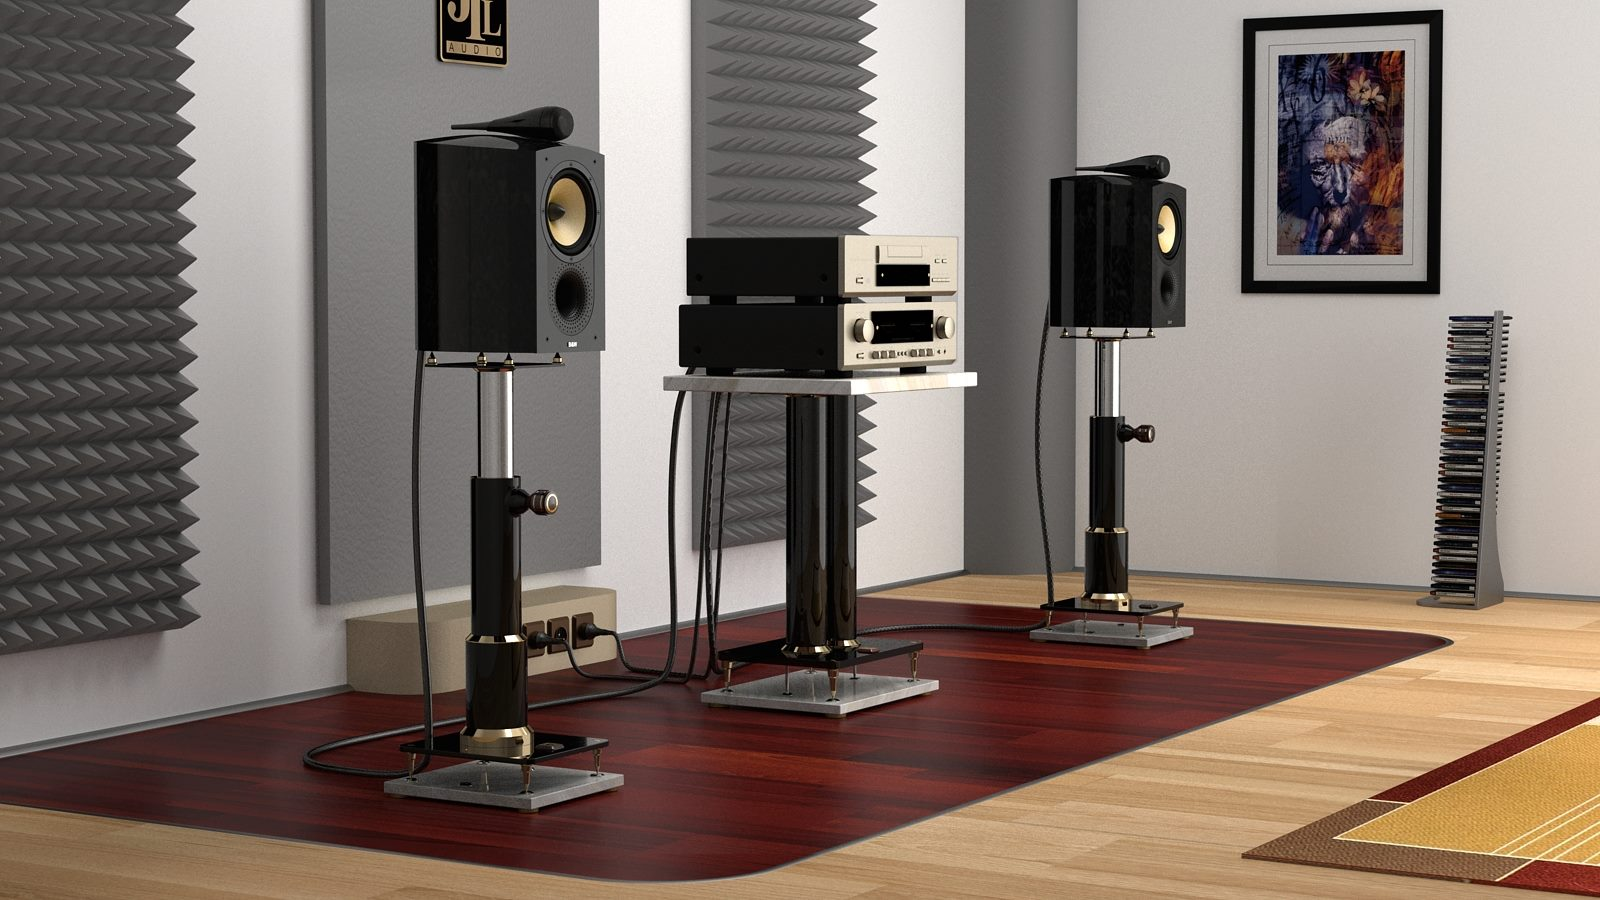 mono and stereo high end audio magazine jtl audio luxury speaker stand and audio rack. Black Bedroom Furniture Sets. Home Design Ideas